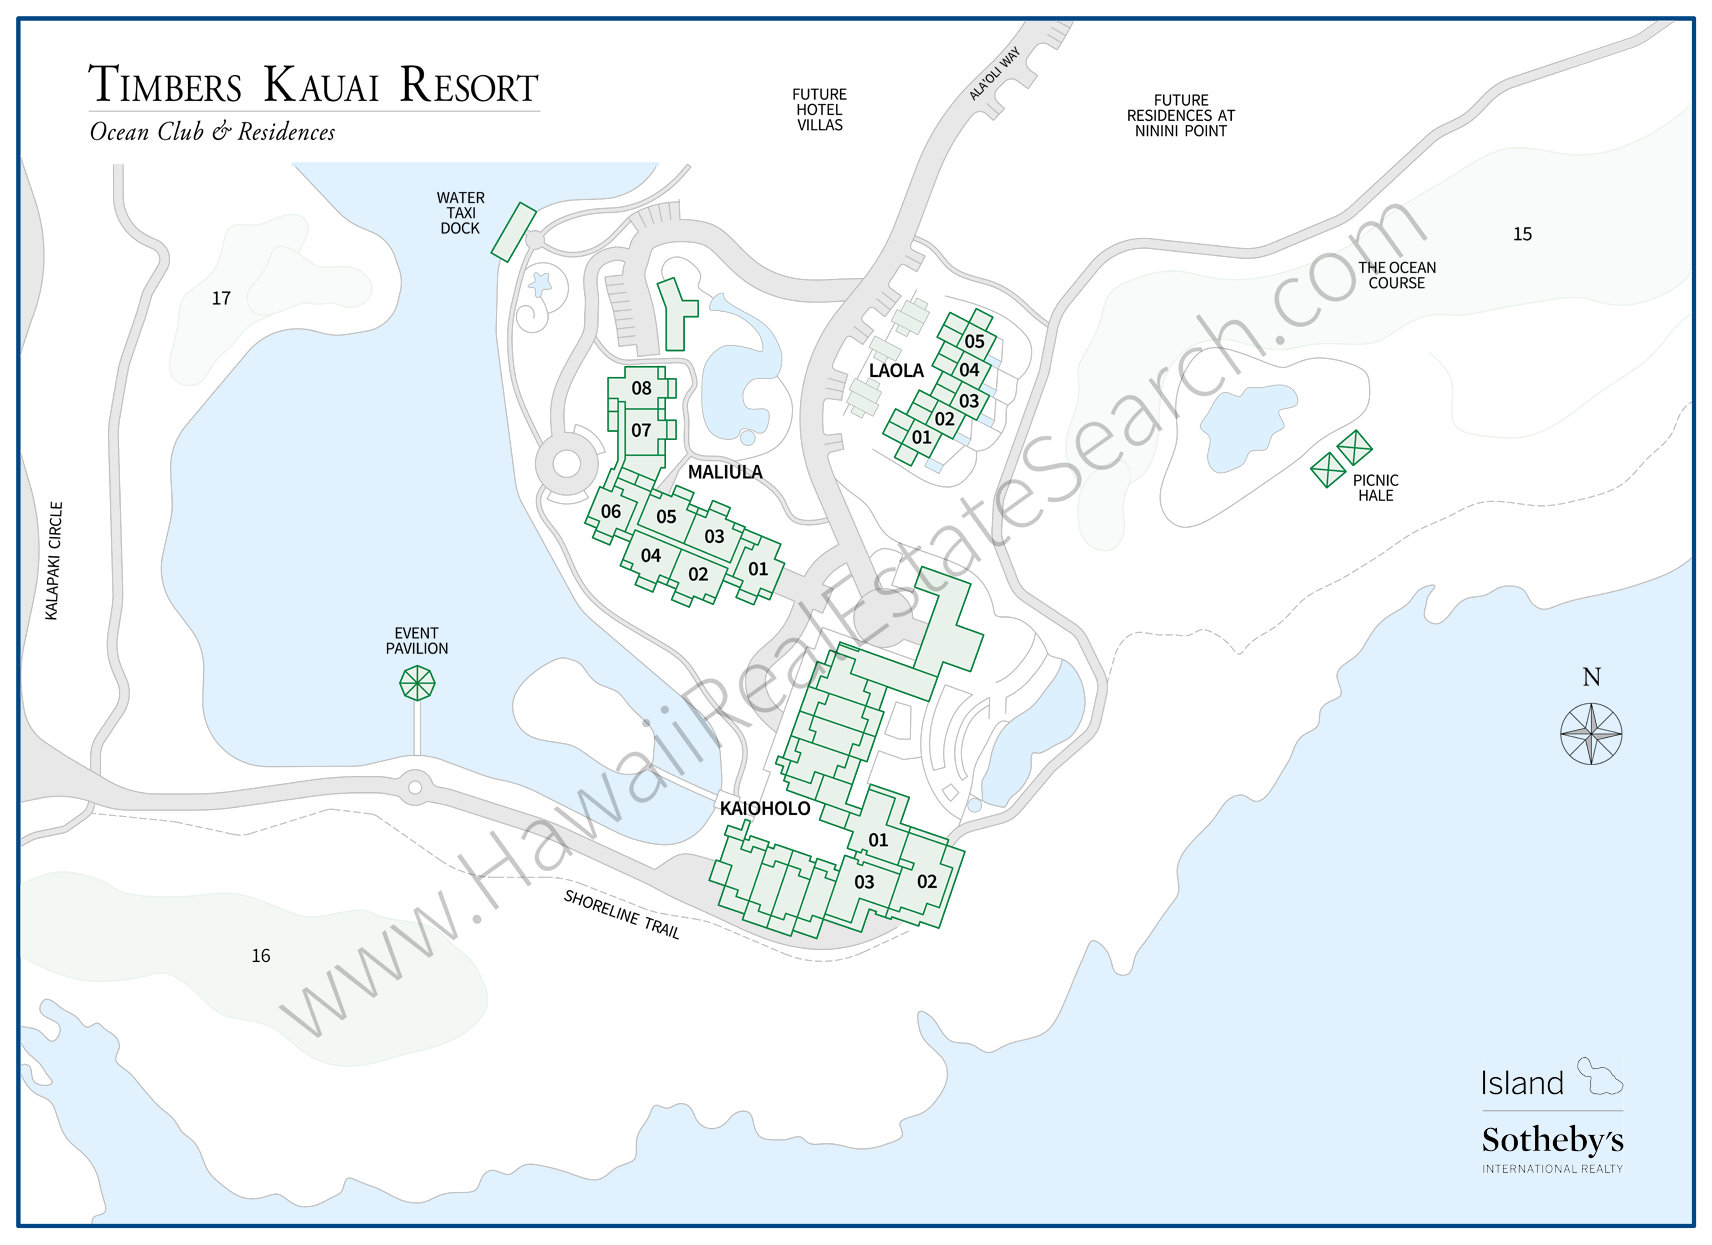 timbers kauai map 2018